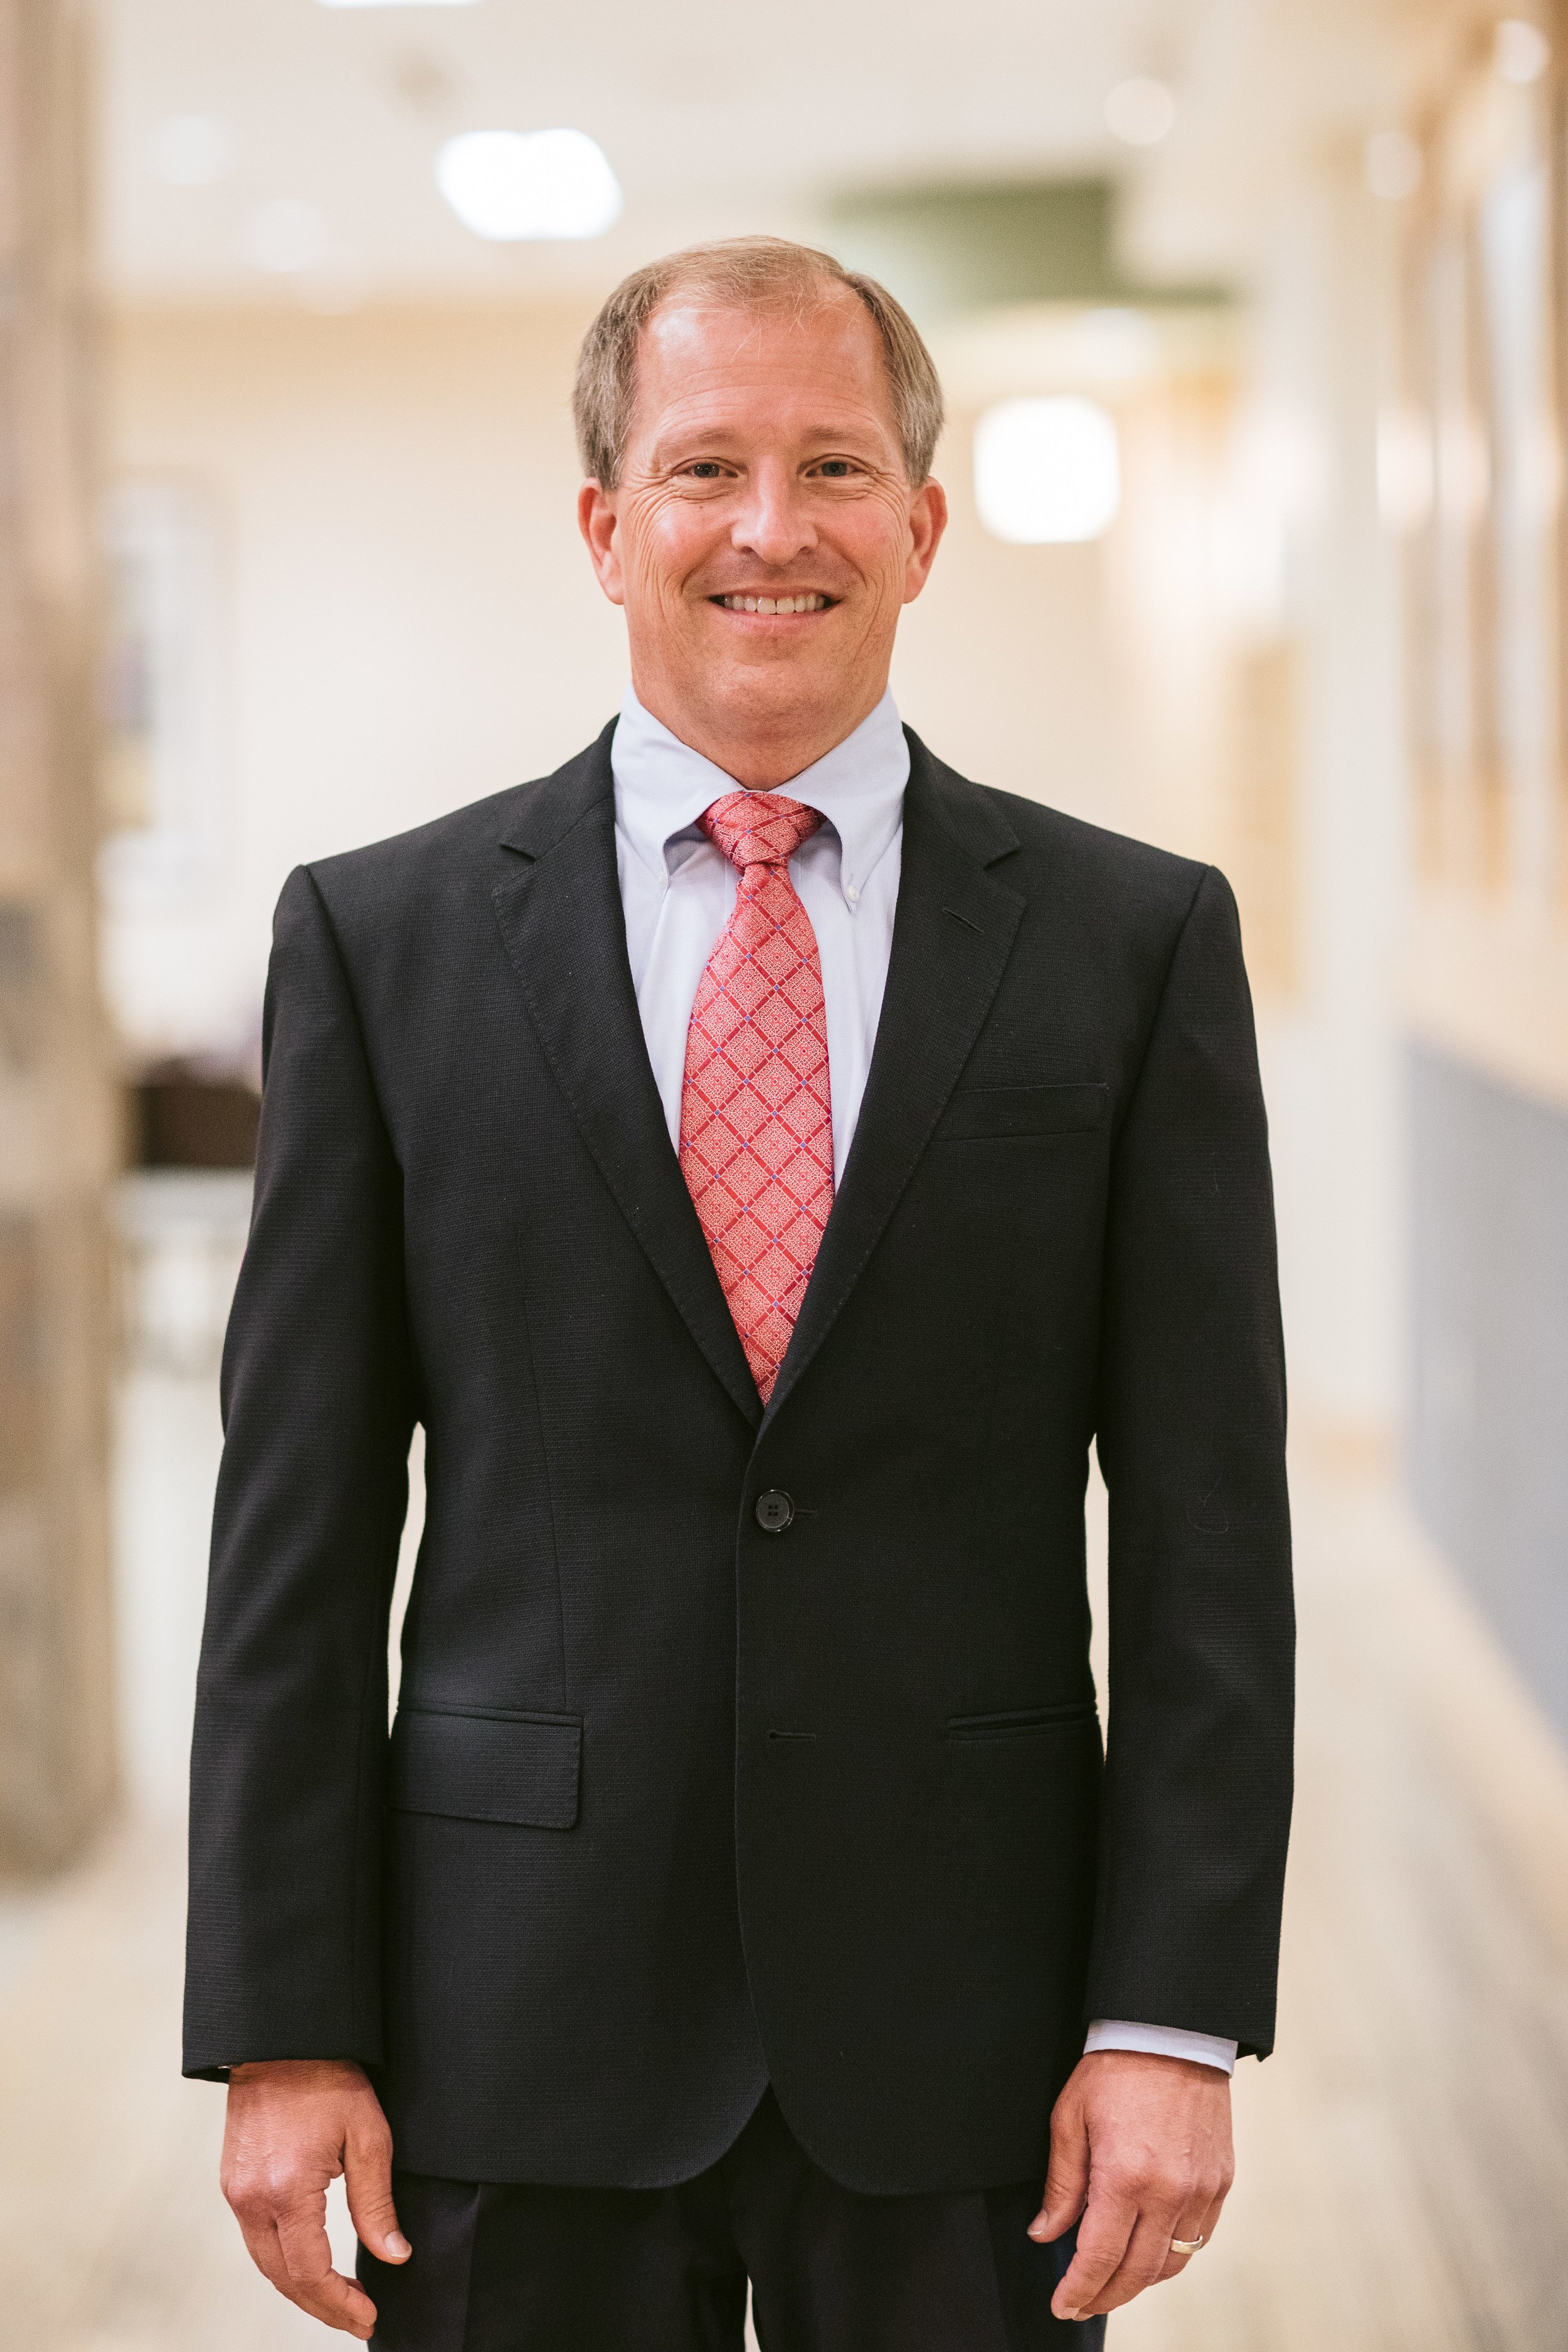 "Dr. Jeff Forslund  completed his undergraduate degree from the University of St. Thomas and graduated from the University of Minnesota School of Dentistry in 1988. After graduating, he served 4 years in the Navy and has been with Southern Heights Dental group since 1993. When asked about his favorite part of dentistry, he responded, ""I enjoy all aspects of Family/General Dentistry and have a special interest in helping people with sleep apnea and TMJ problems"".  A Diplomate of the American Board of Dental Sleep Medicine. Member of American Academy of Dental Sleep Medicine (AADSM), and International Association of Physiologic Aesthetics. Licensed by the State of Minnesota."